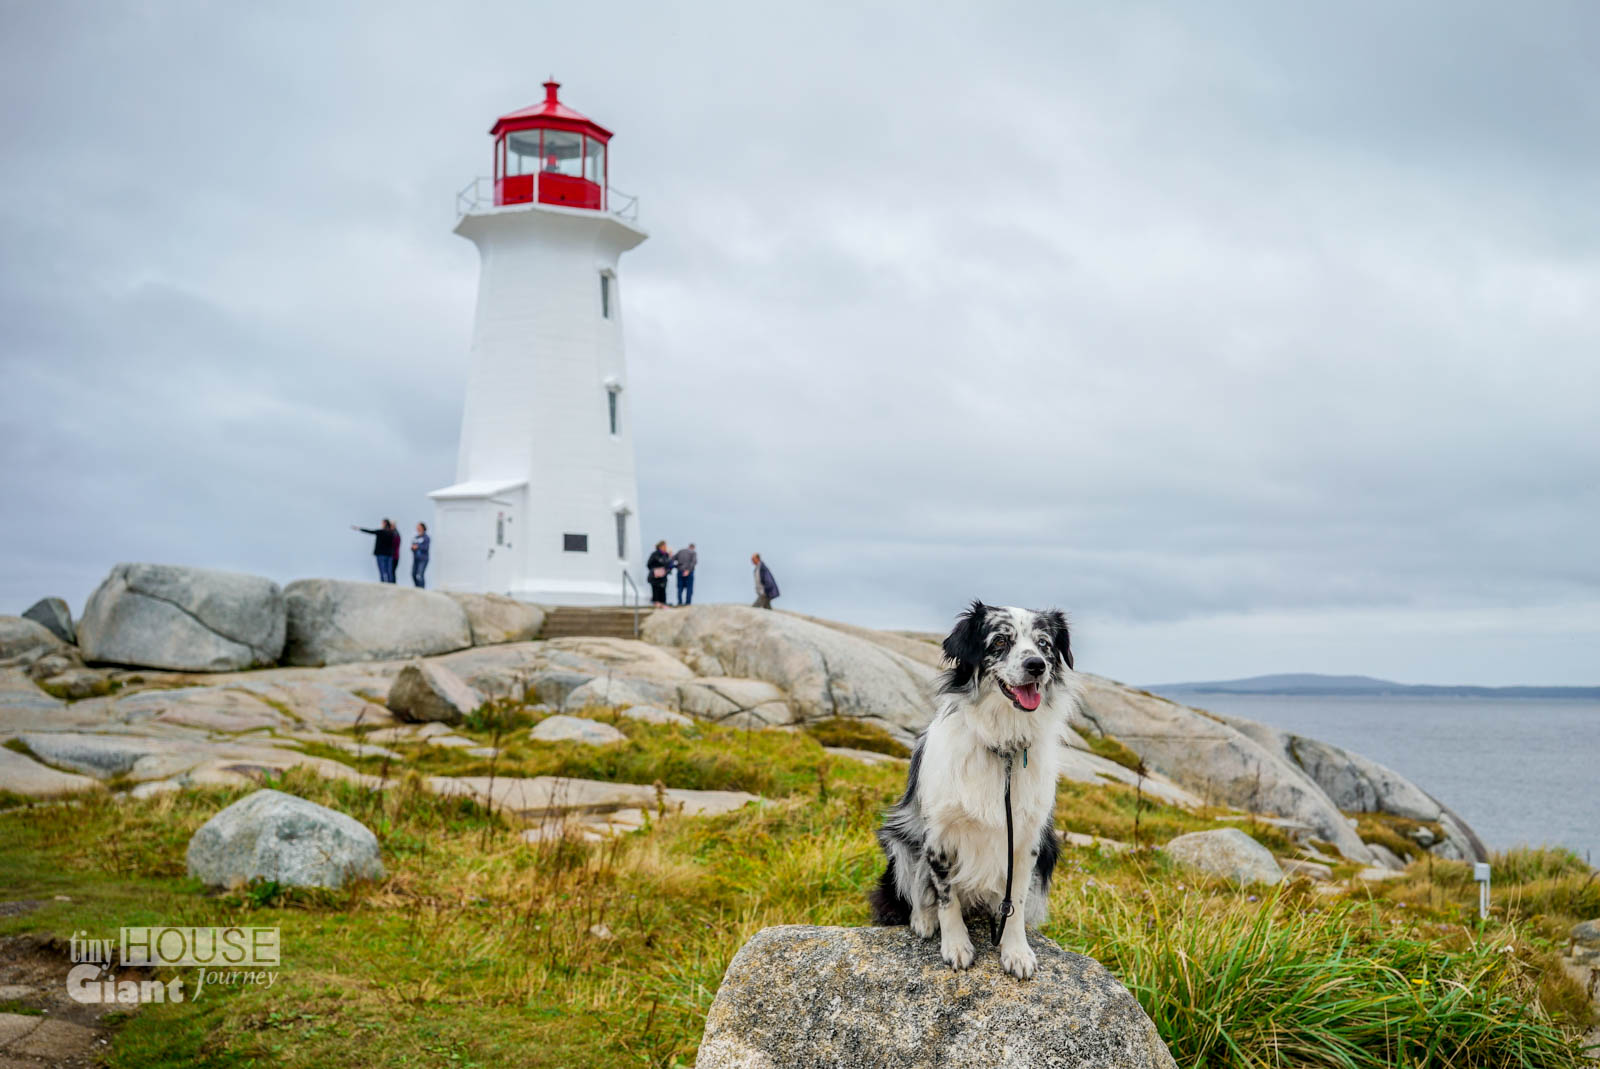 THGJ Peggy's Cove